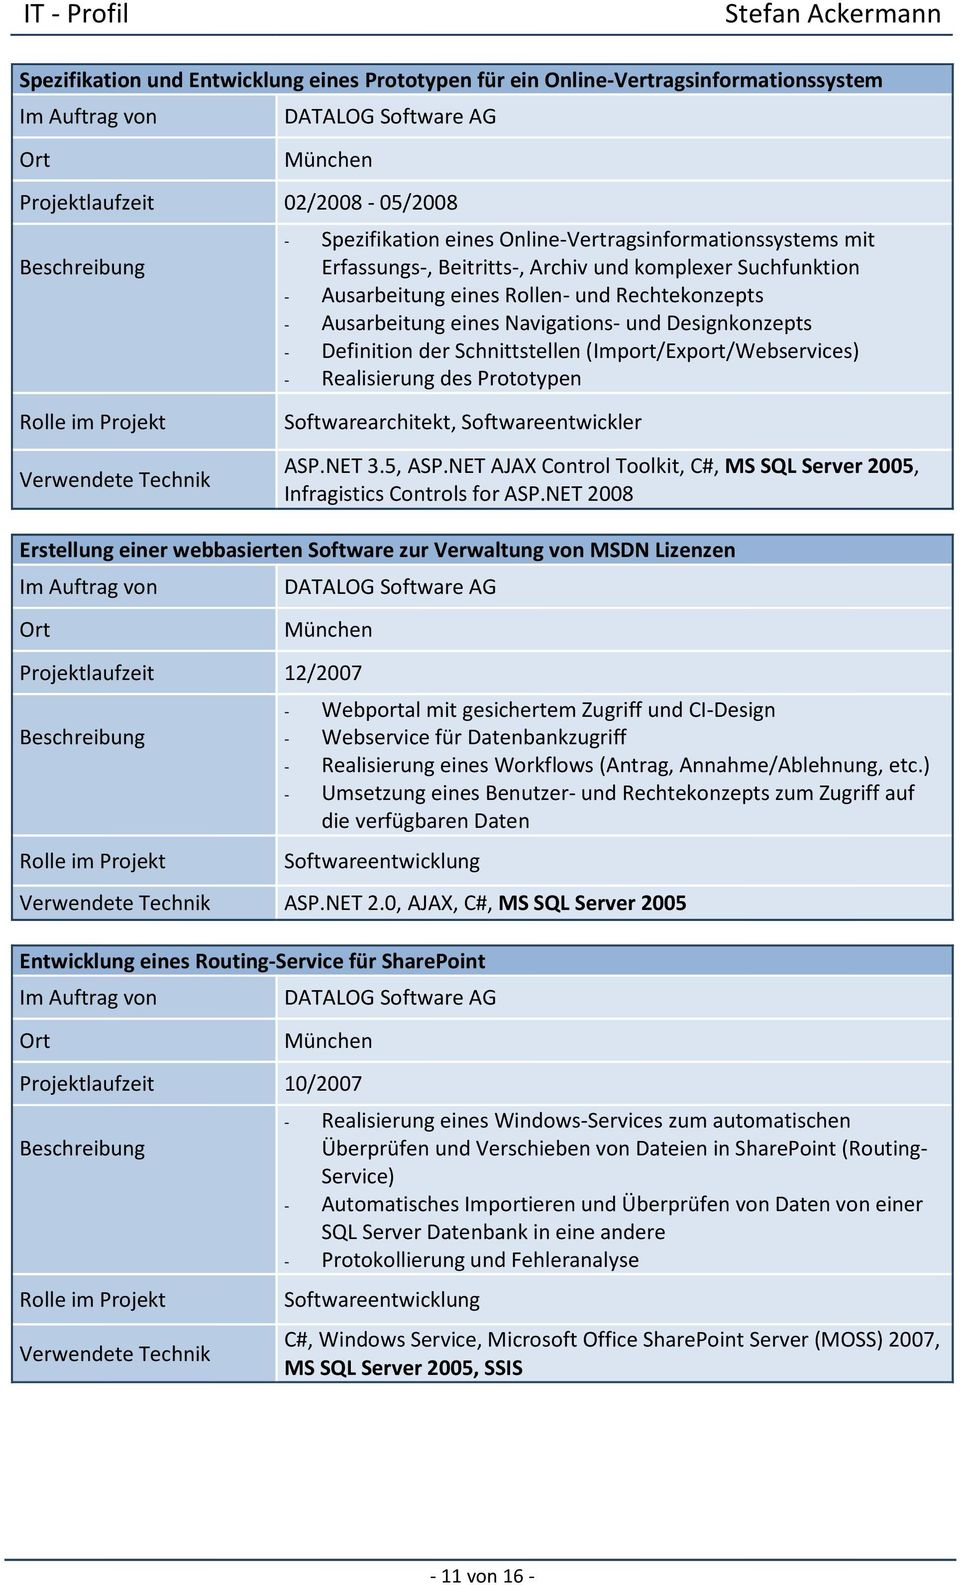 (Import/Export/Webservices) - Realisierung des Prototypen Softwarearchitekt, Softwareentwickler ASP.NET 3.5, ASP.NET AJAX Control Toolkit, C#, MS SQL Server 2005, Infragistics Controls for ASP.